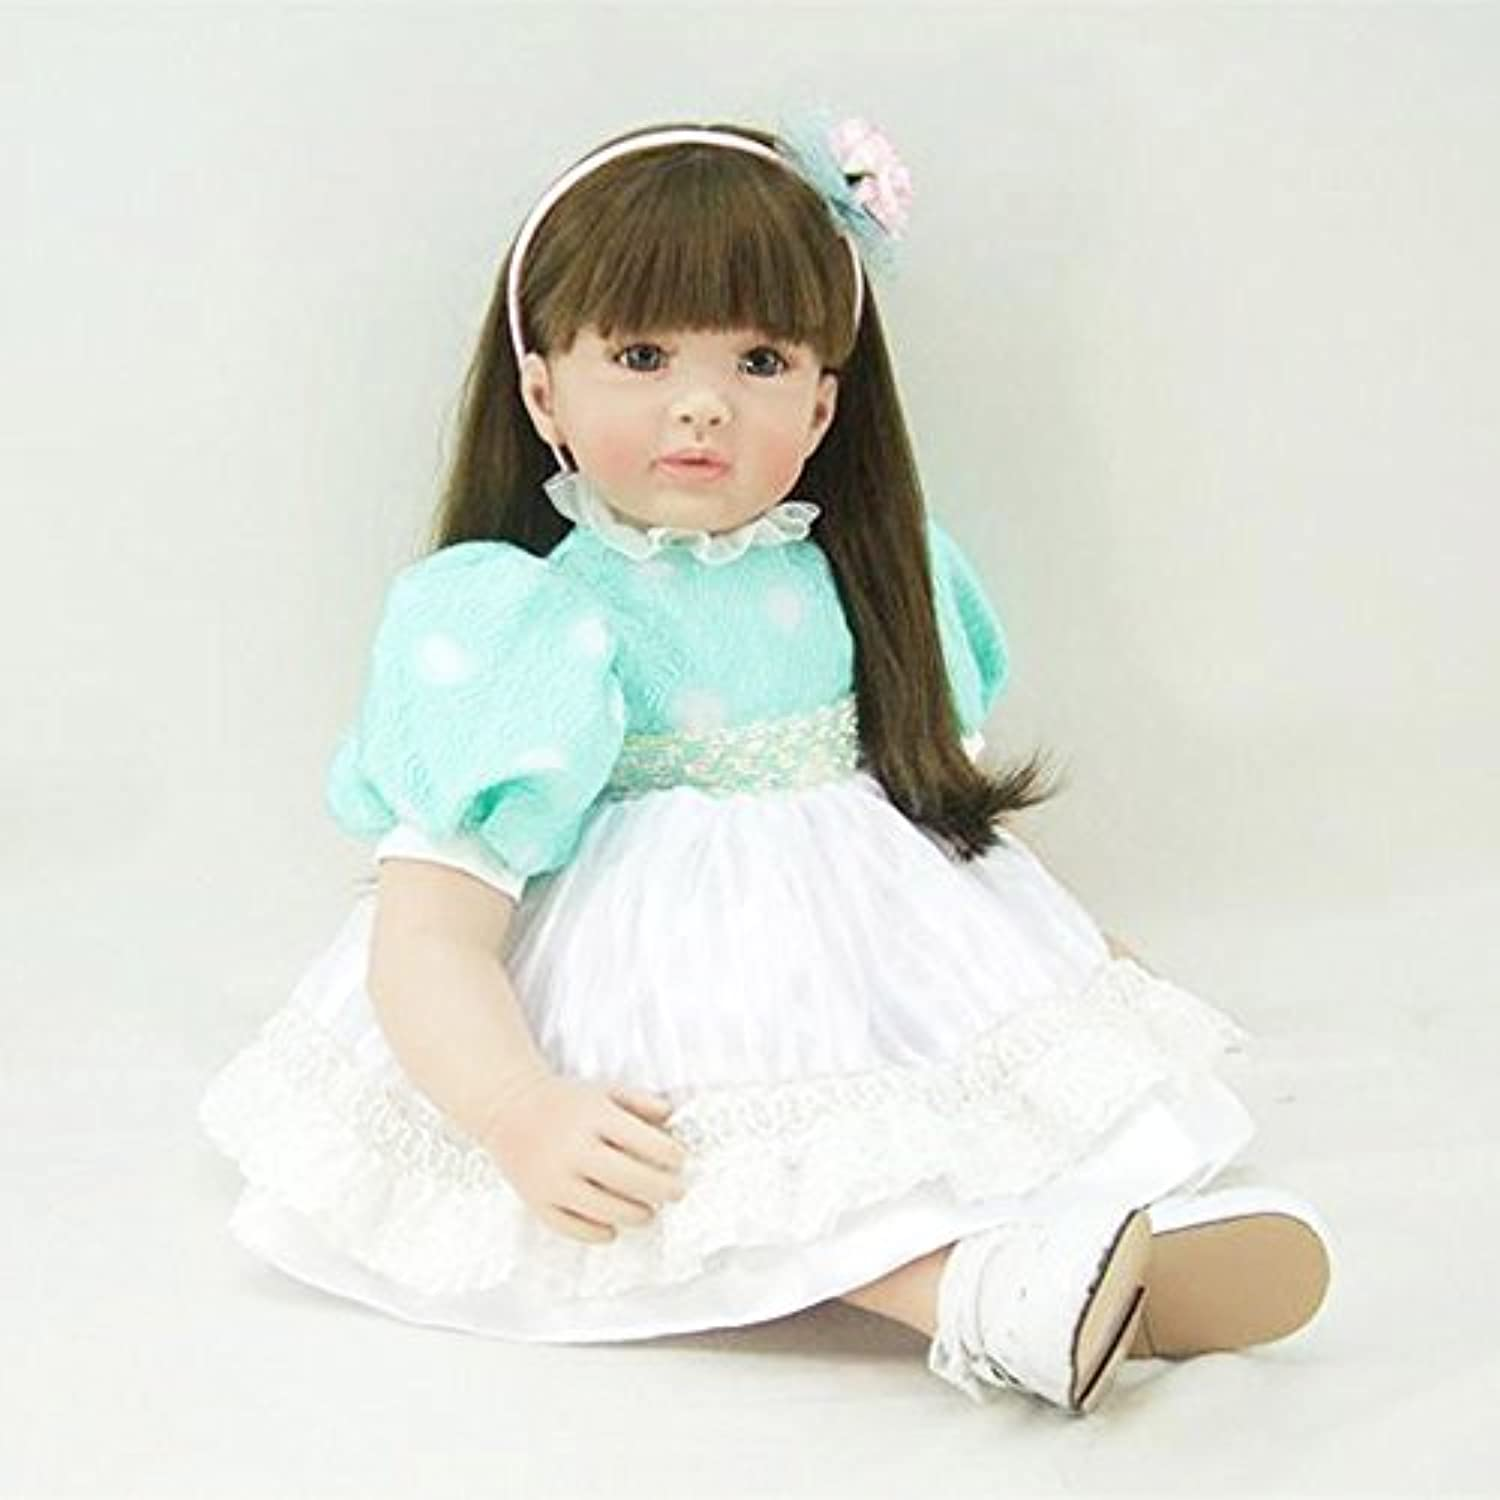 PursueベビーソフトボディリアルタッチLifelike Princess Girl Doll withライトブラウン目、24インチリアルなWeighted幼児用ベビー人形for Girls and大人